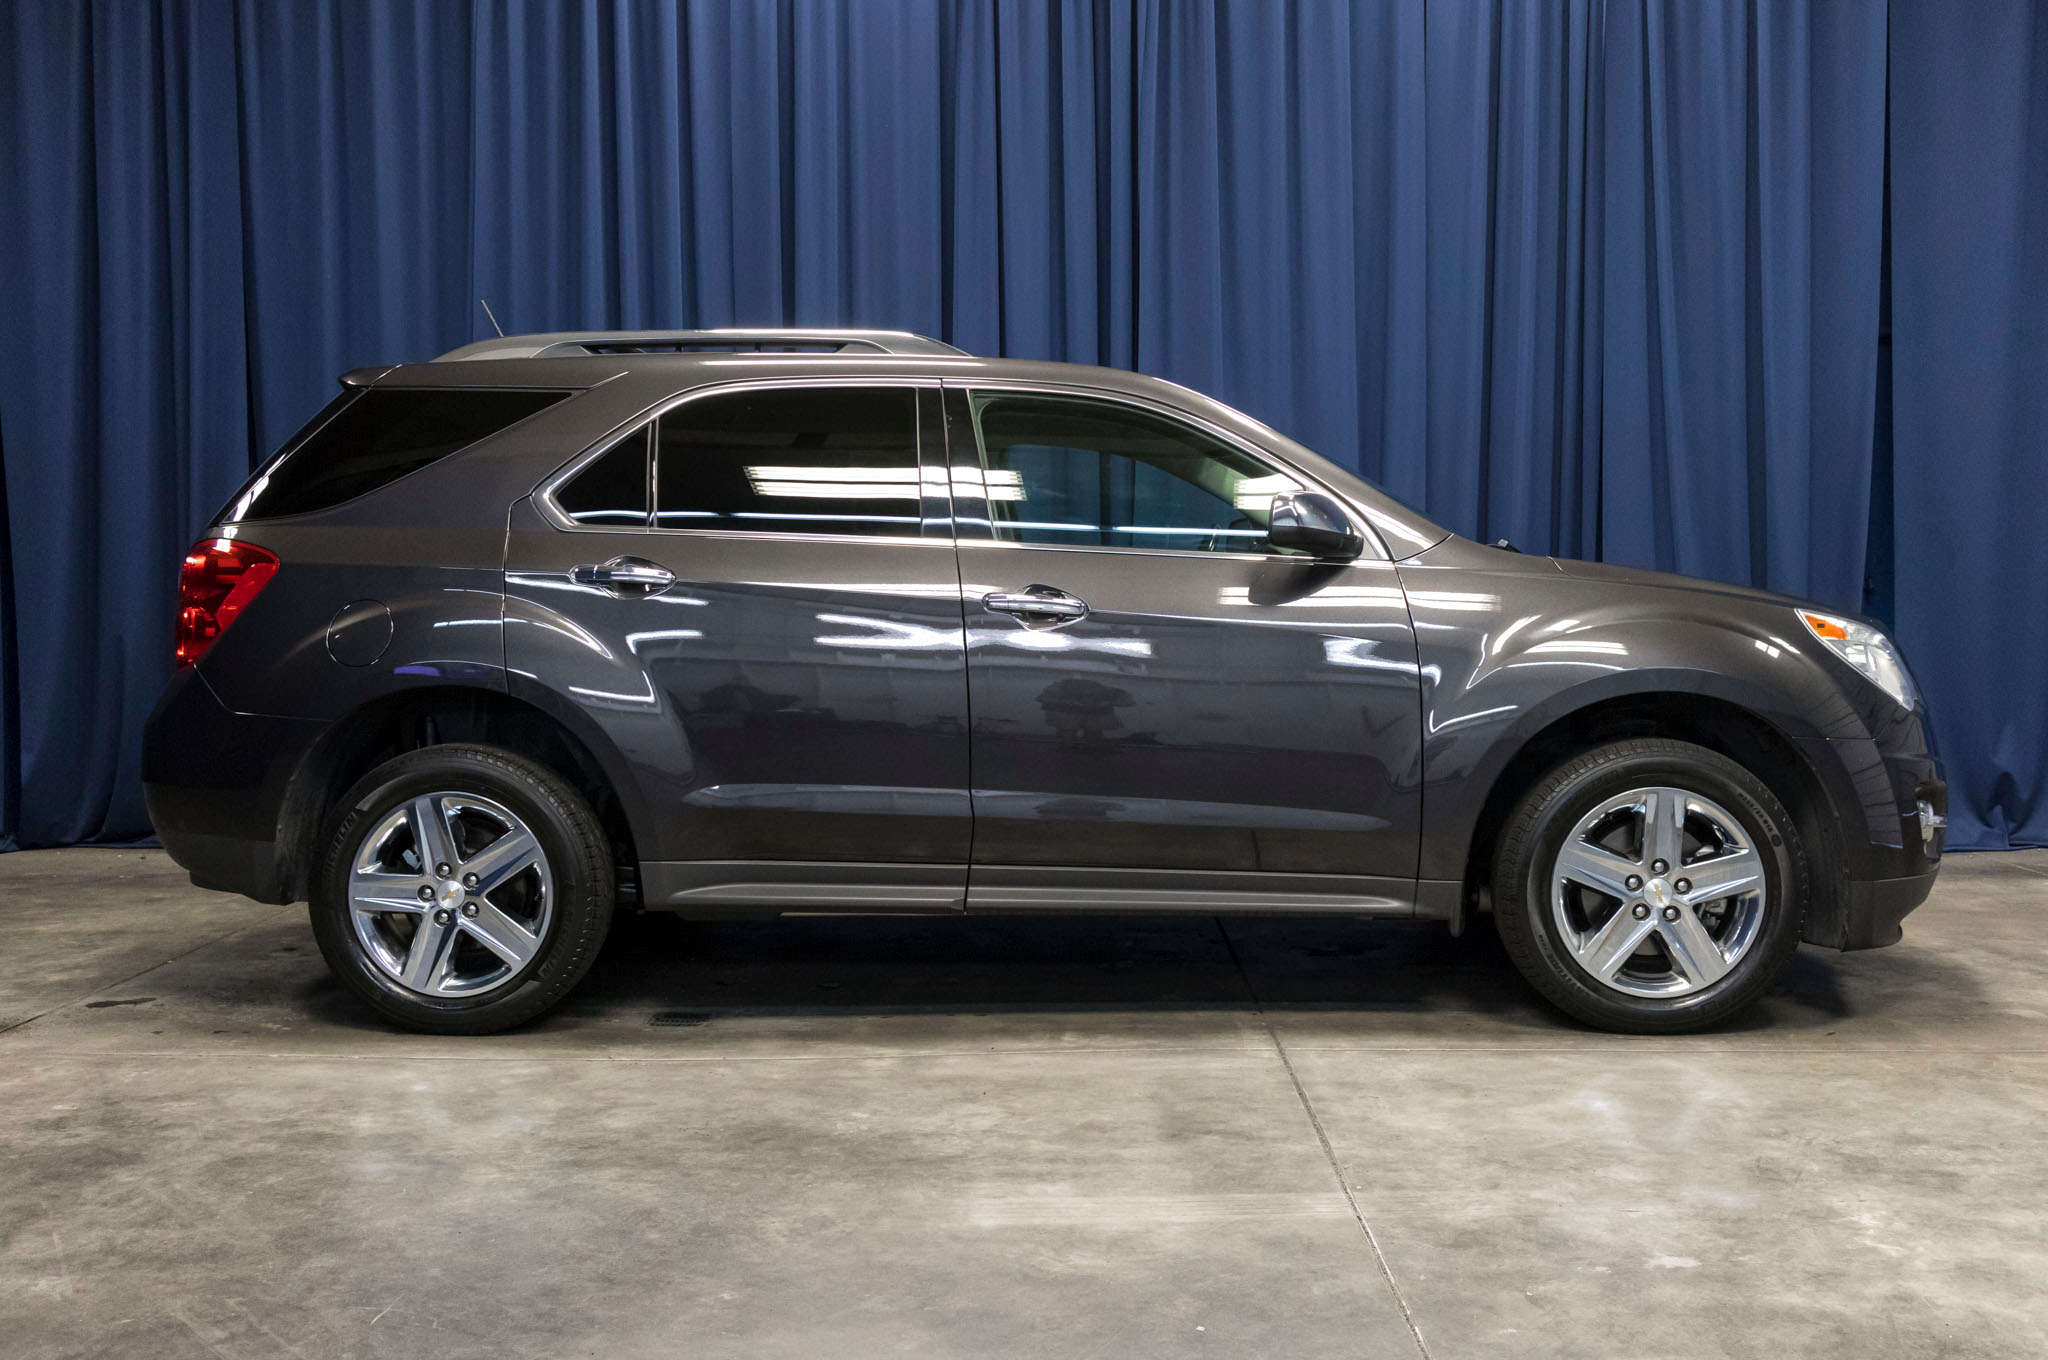 dashboard equinox fwd review chevrolet news crossover suv ltz chevy awd